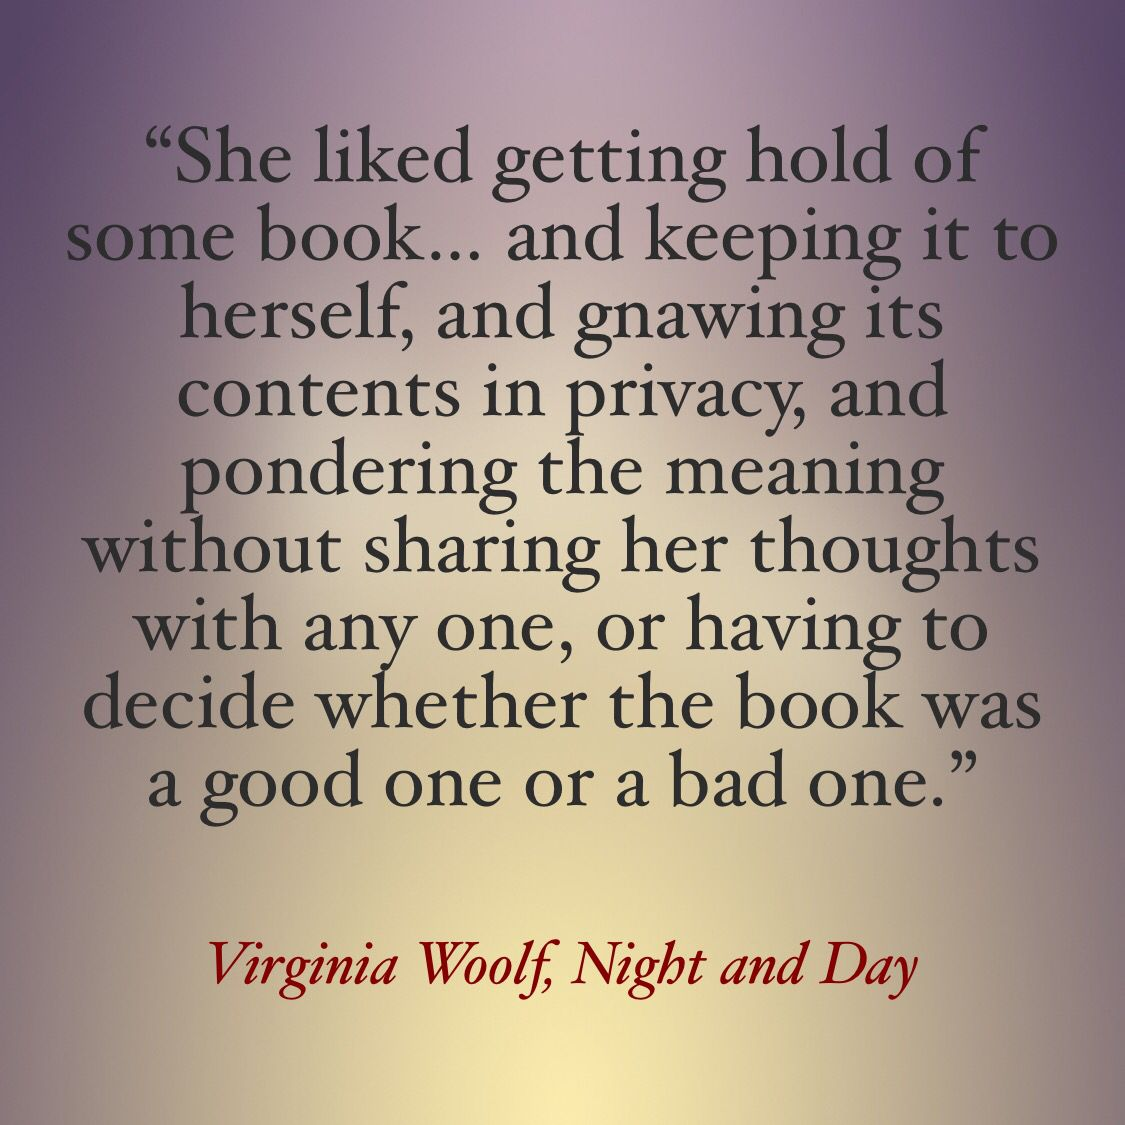 Virginia Woolf Night And Day Virginia Woolf Quotes Day For Night Cool Words